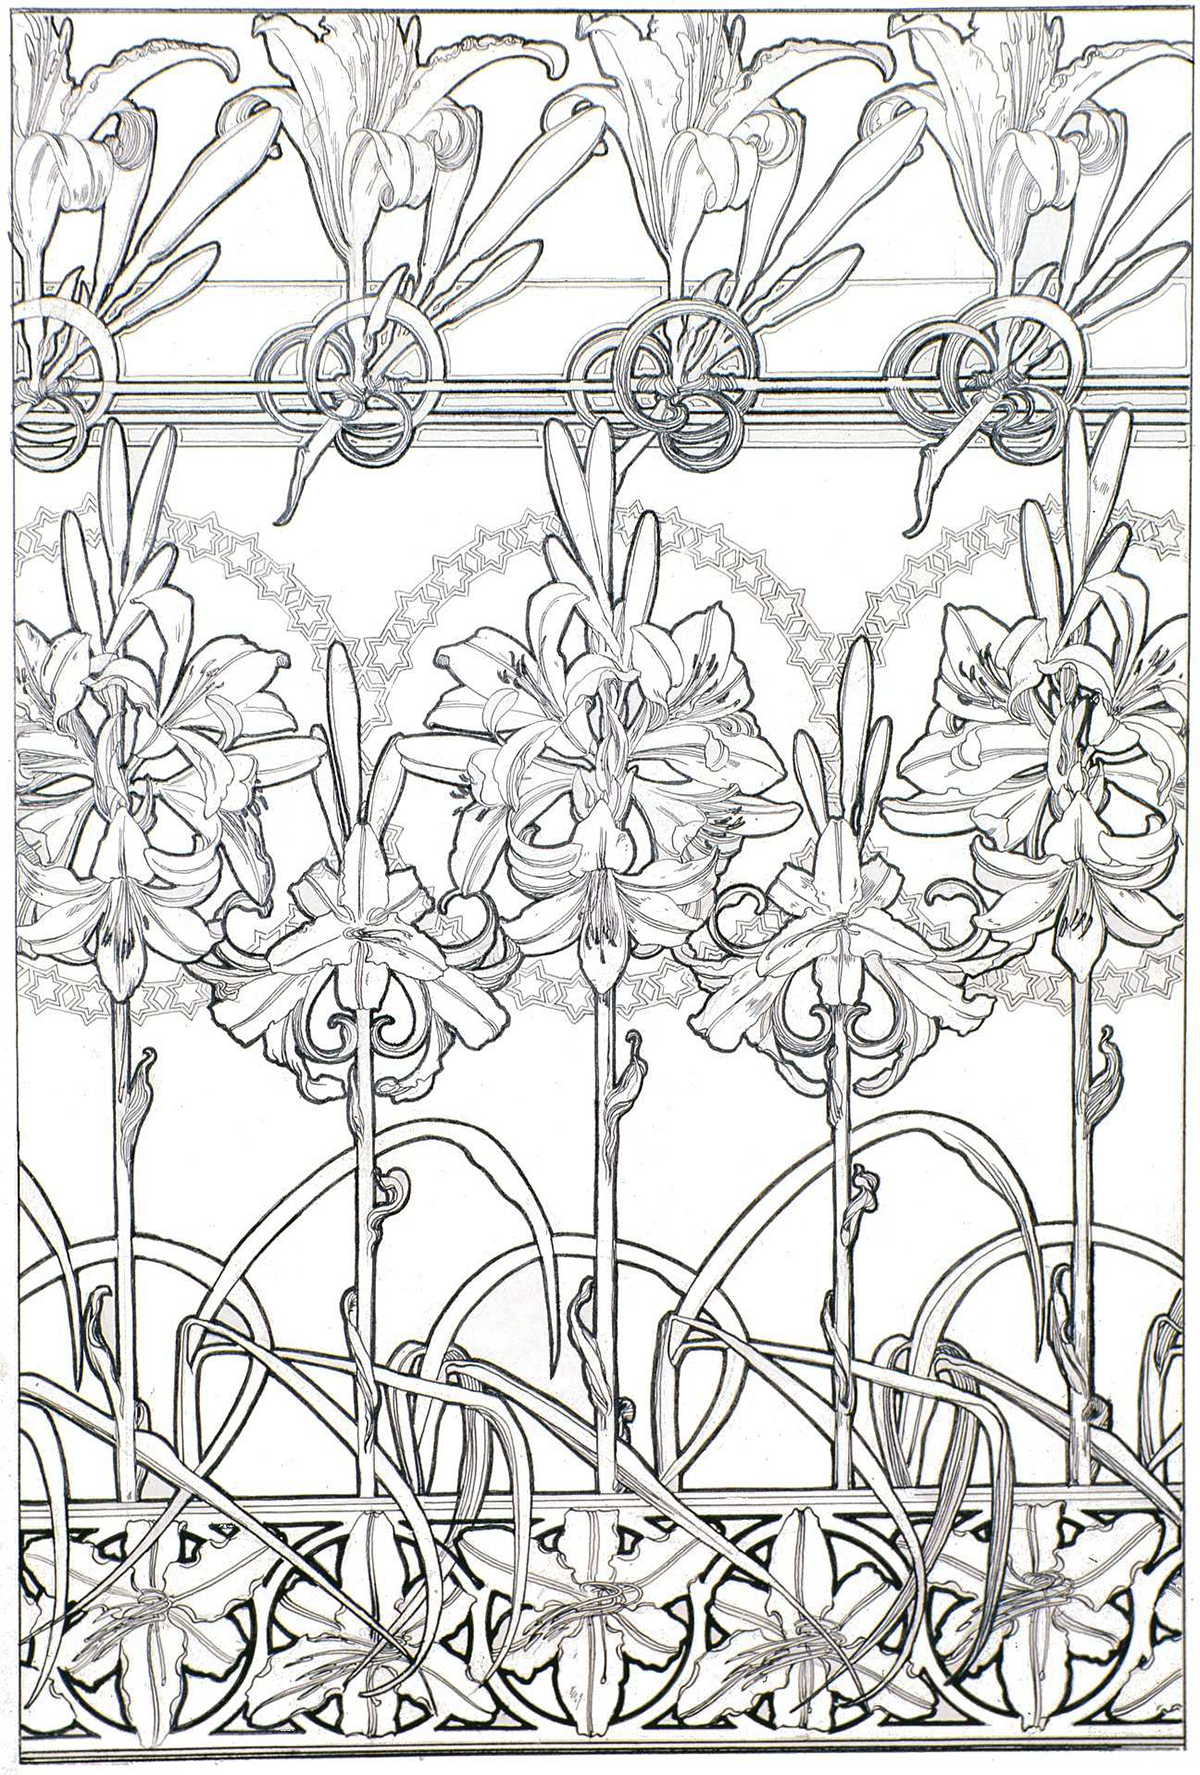 A coloring page of flowers